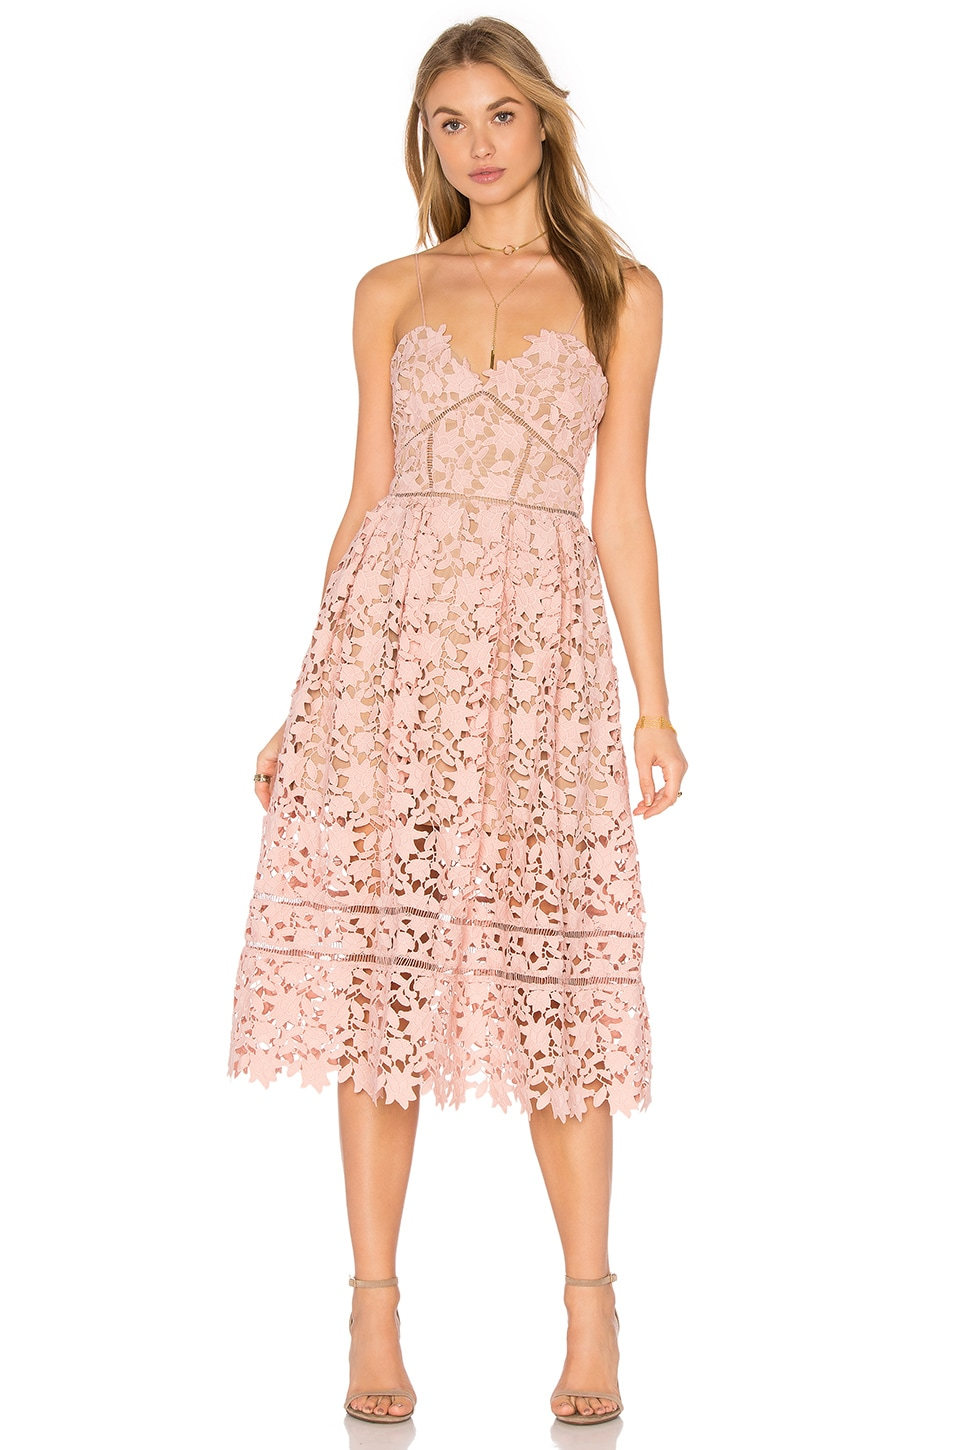 self-portrait Azaelea Dress in Blush Pink